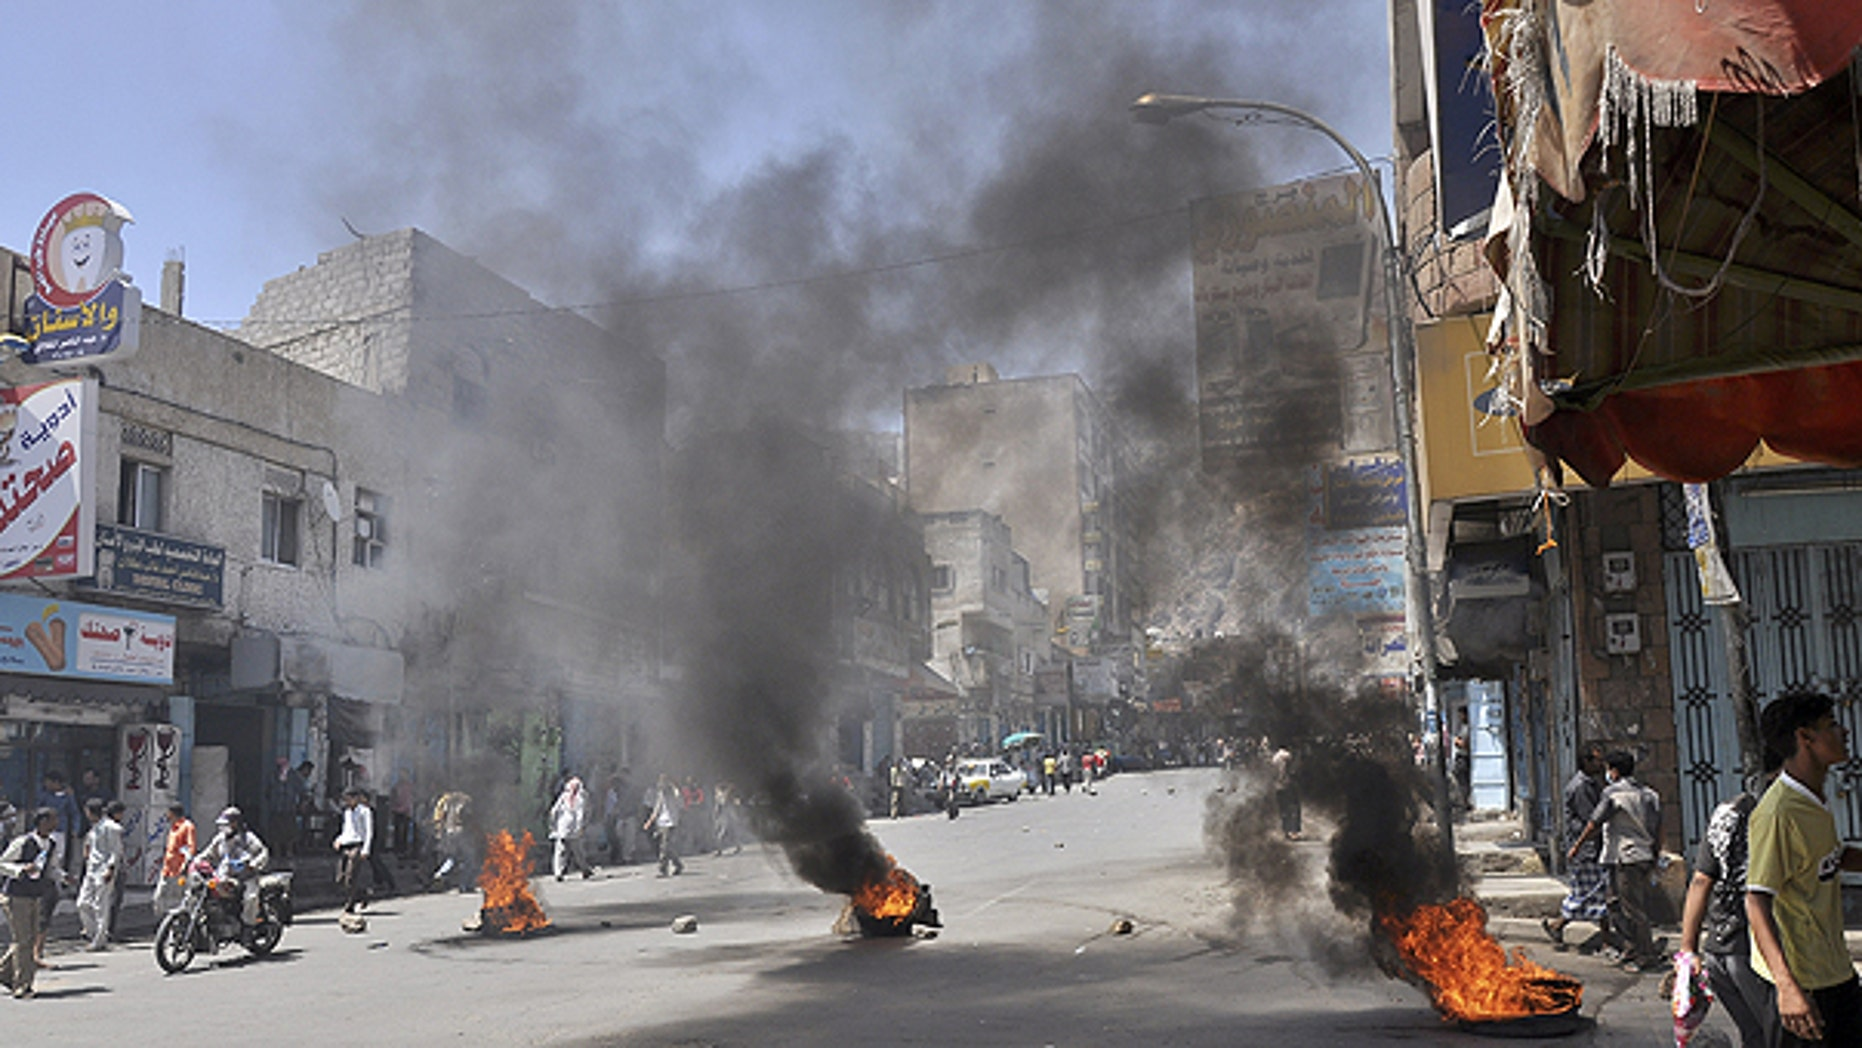 May 31: Burning tires left by anti-government protestors as they block the road during clashes with Yemeni security forces in Taiz, Yemen.